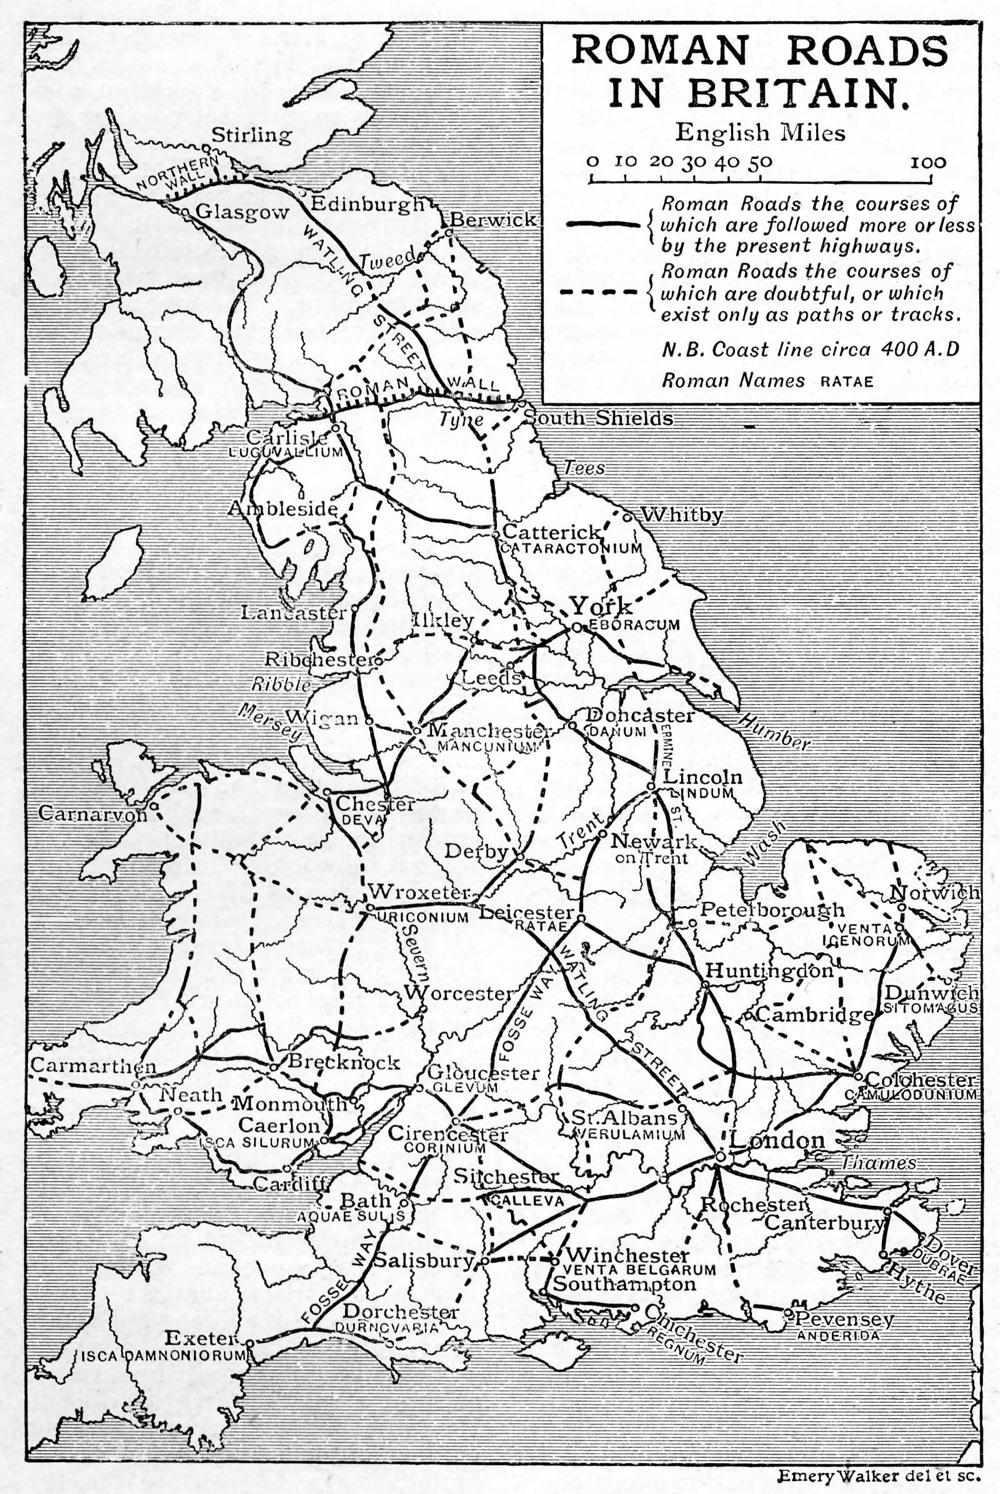 roman roads essay Roman technology the romans used great public projects to make their empire the most advanced of the ancient world the romans particularly excelled at building roads the roads made it easier the romans to travel, move troops, collect taxes and trade with faraway provinces.